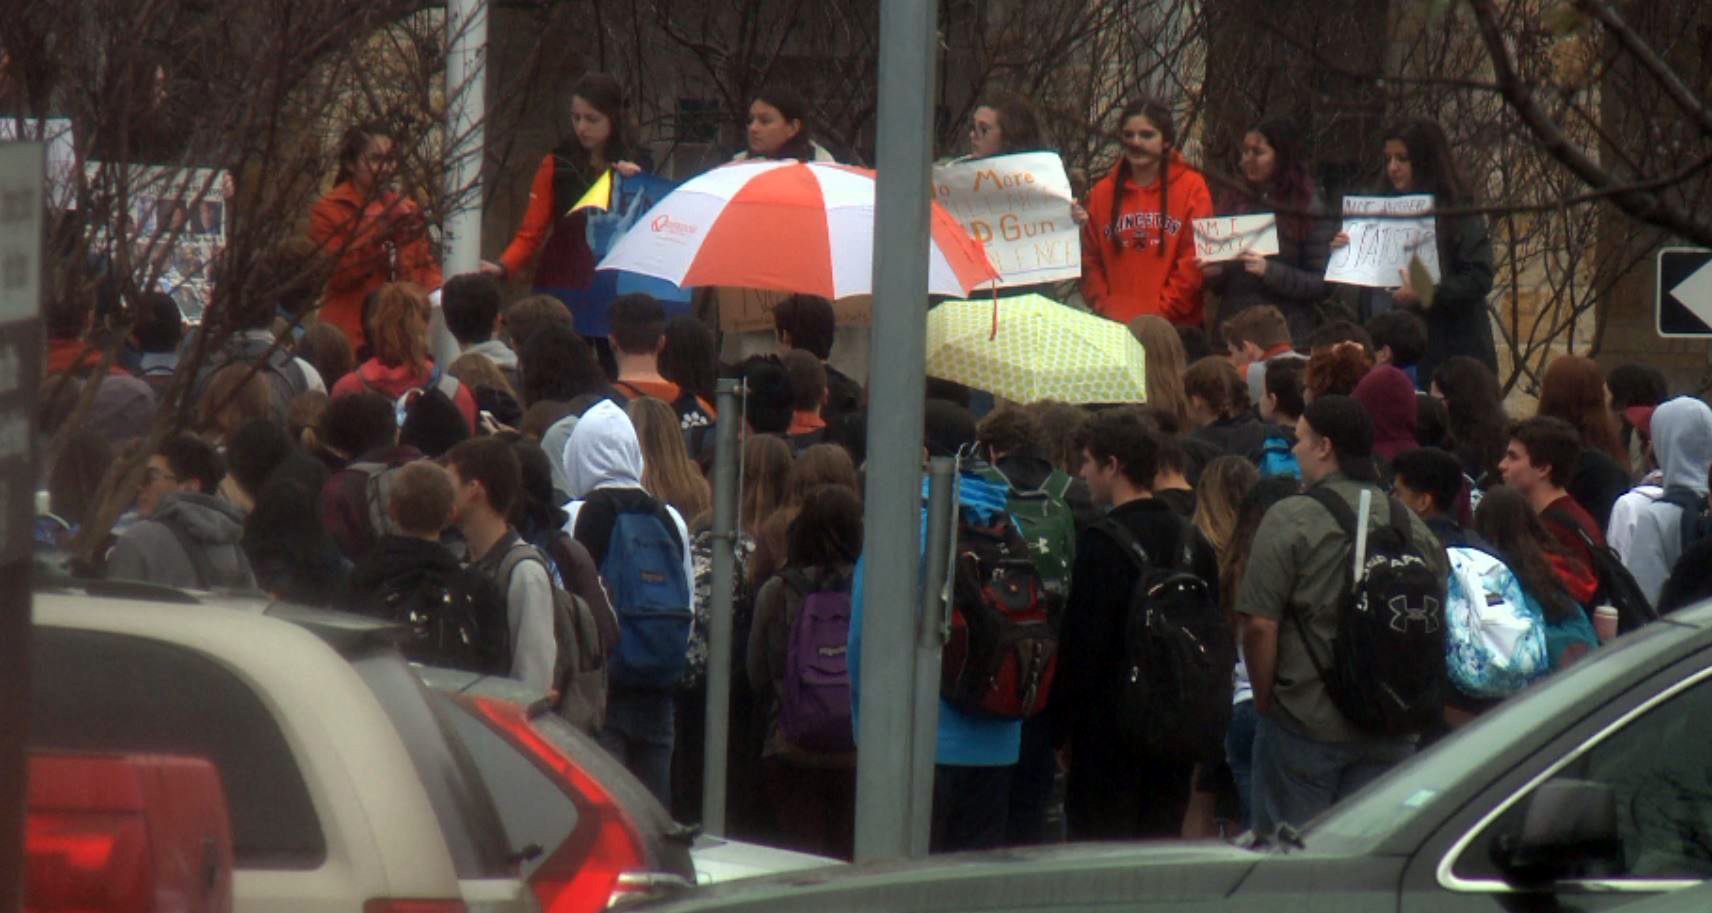 Students from Dripping Springs High School stand in the rain protesting gun violence in schools. (KXAN Photo)